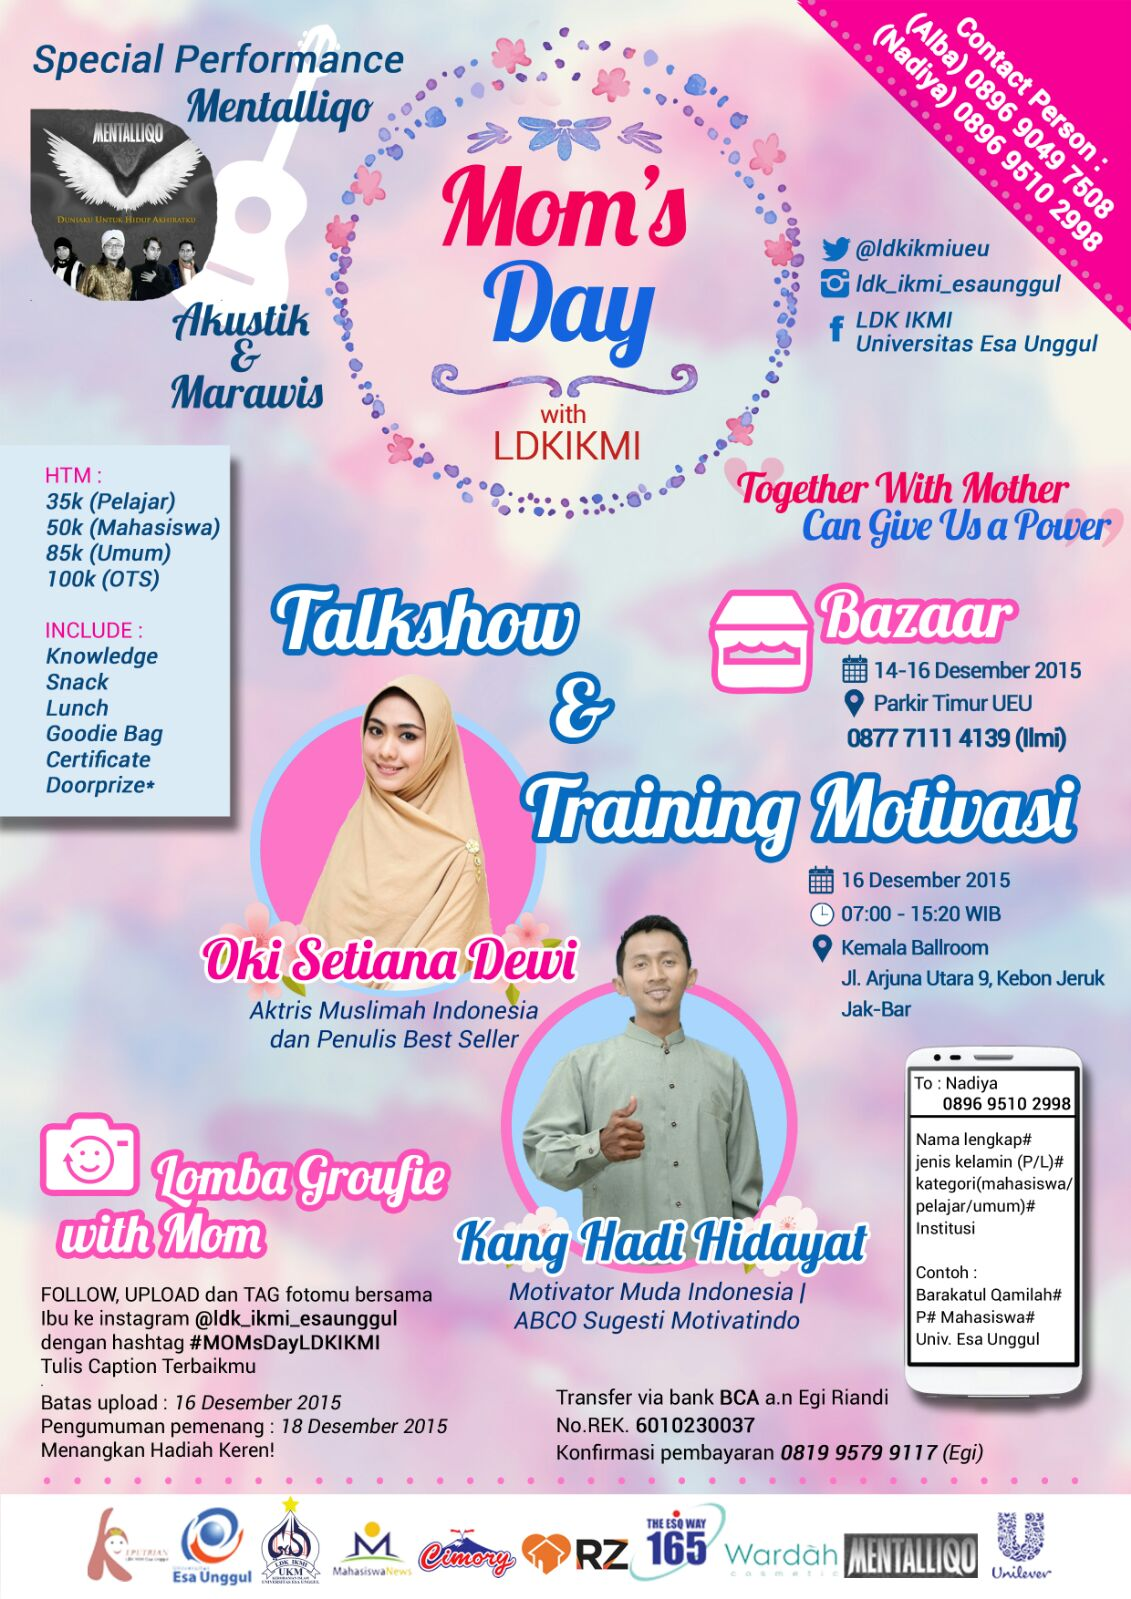 Talkshow dan Seminar Moms Day With LDK LKMI Universitas Esa Unggul